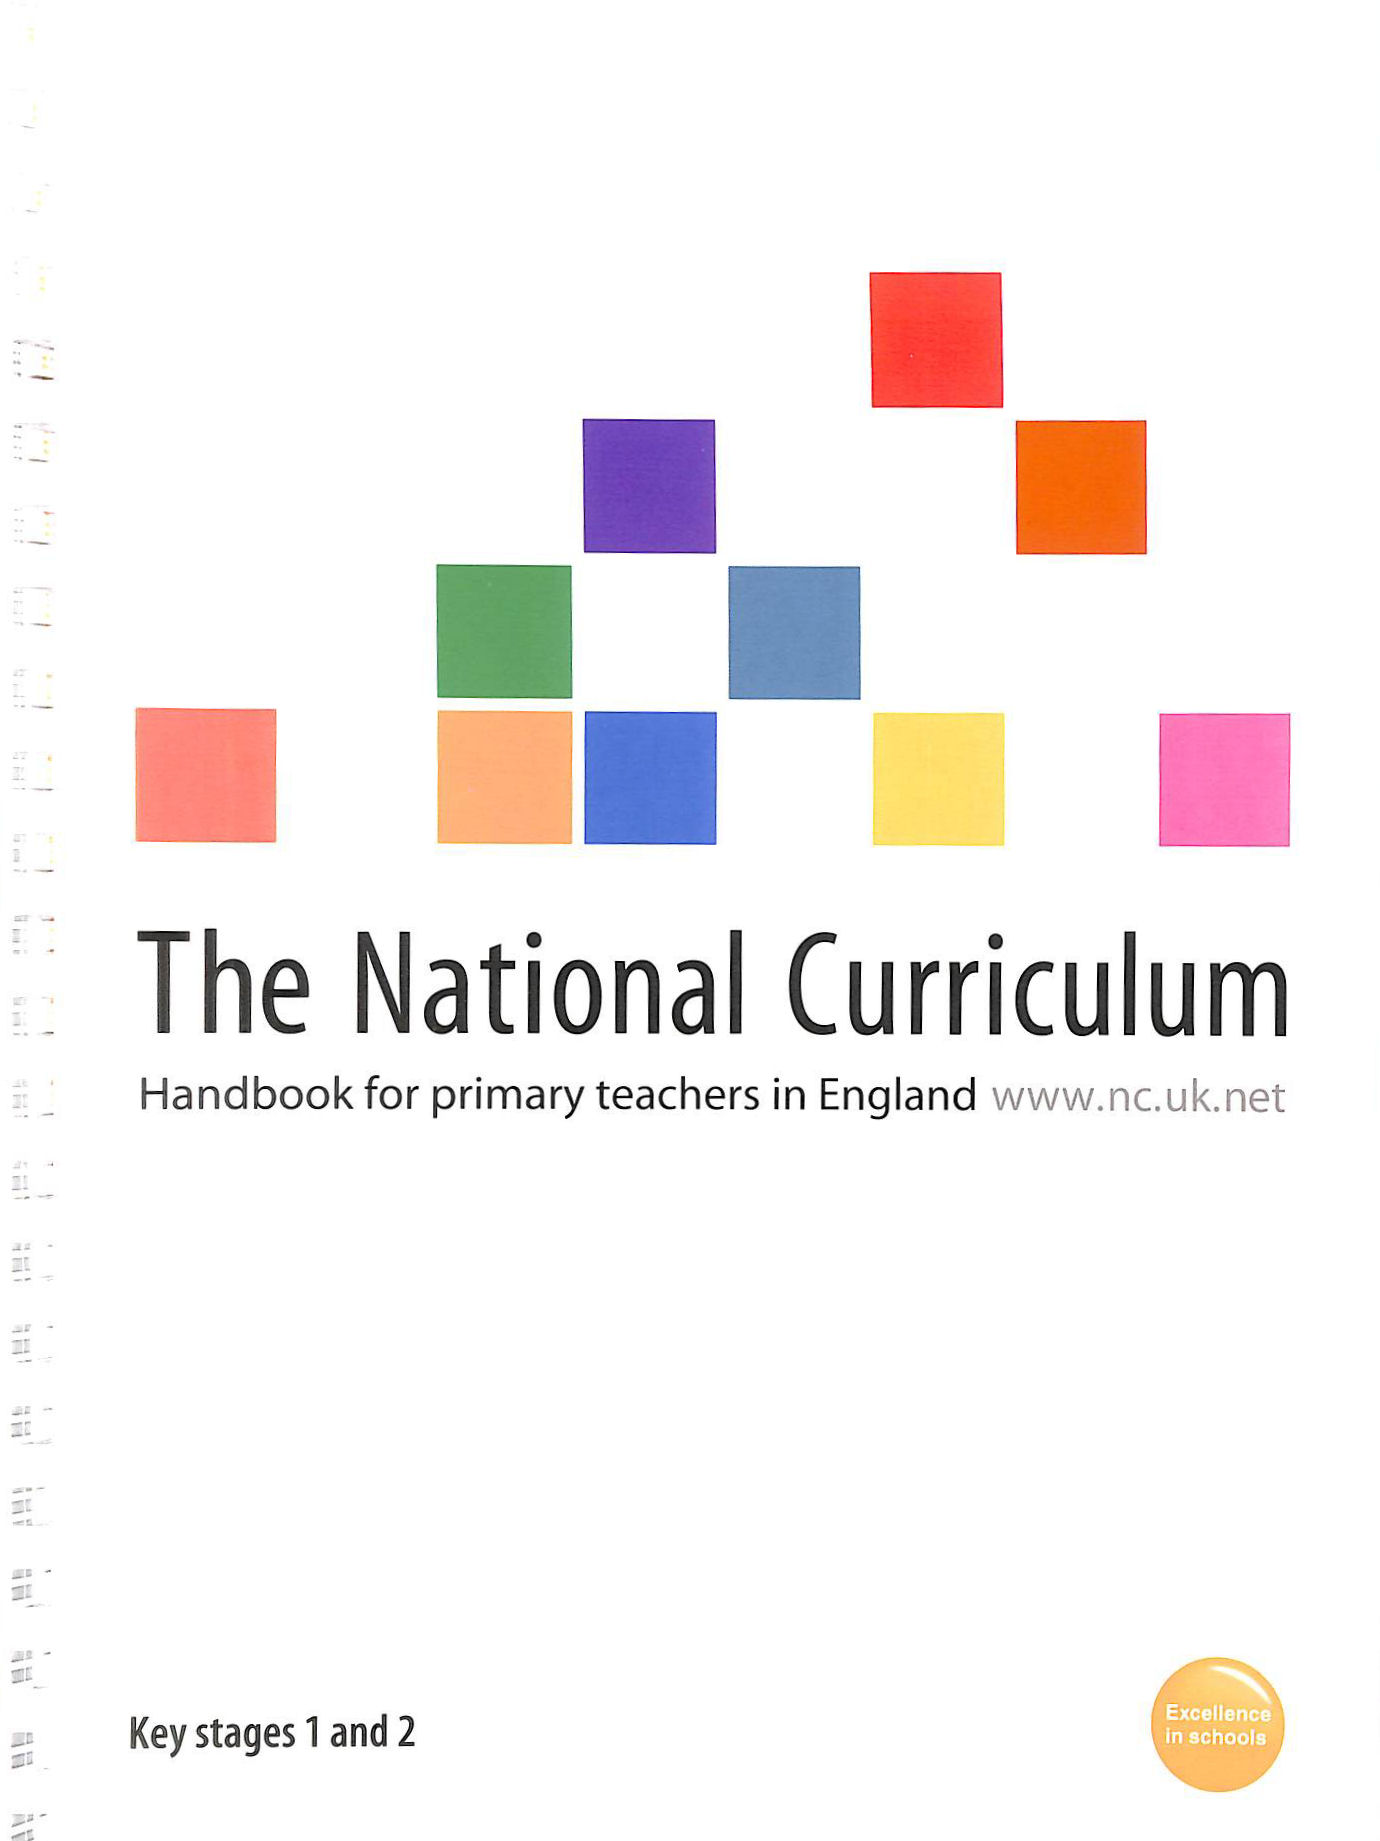 Image for The Handbook For Primary Teachers Key Stages 1 - 2